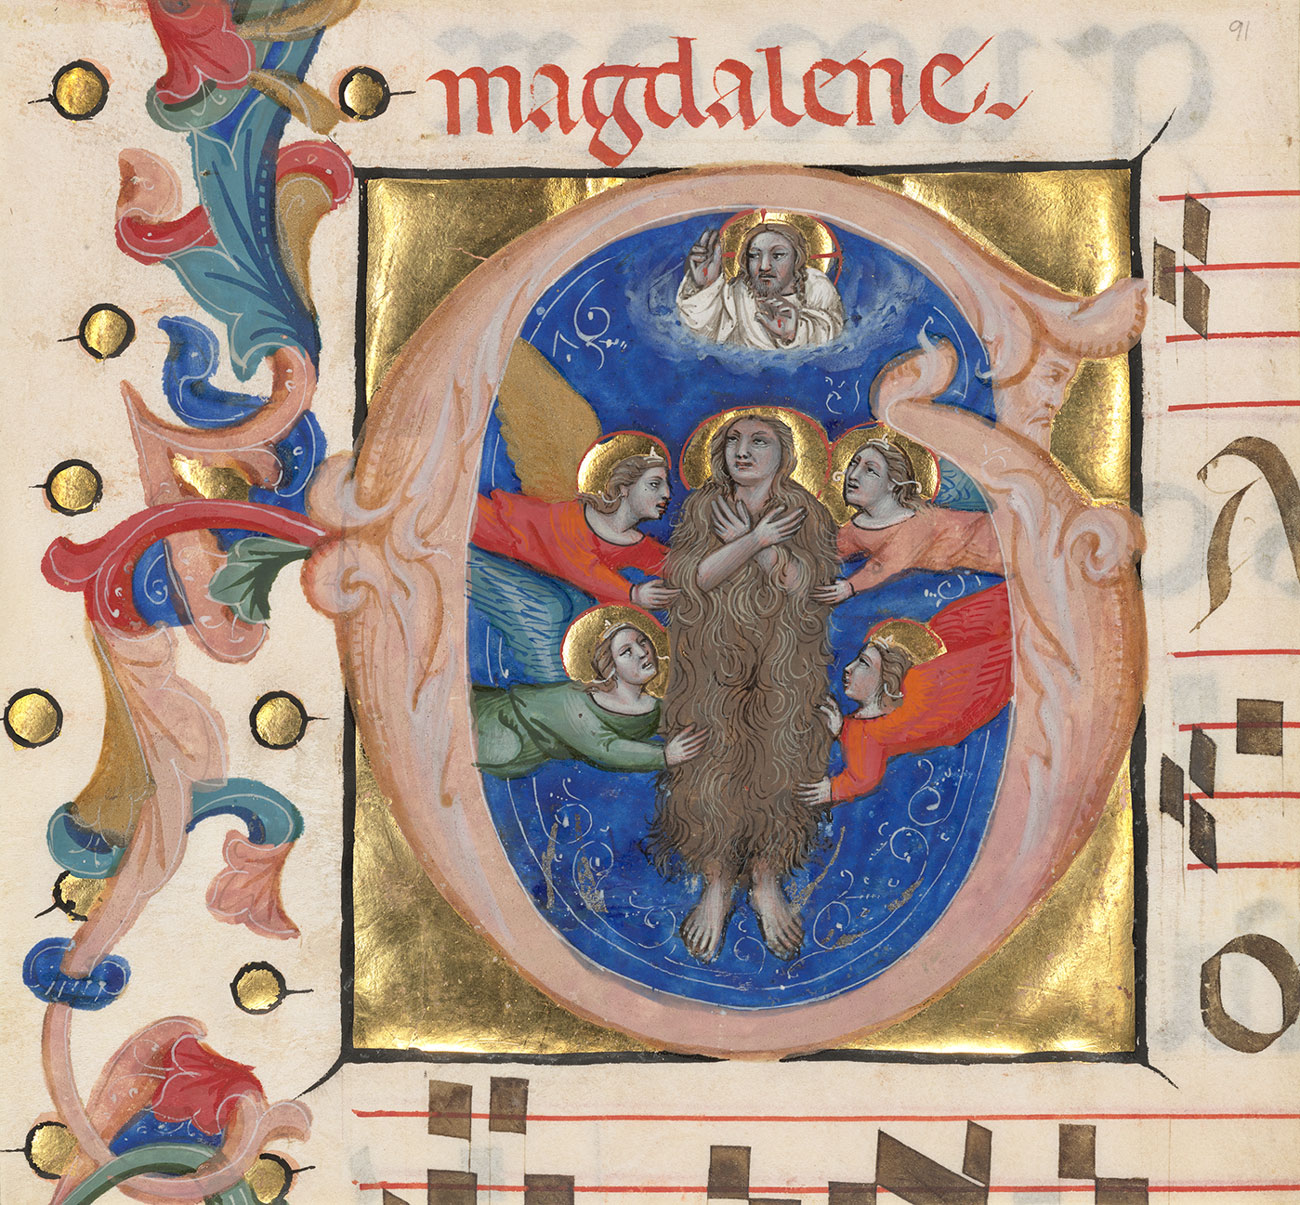 A detail of an illuminated manuscript. The illustration inside the initial G features Mary Magalene surrounded by angels.